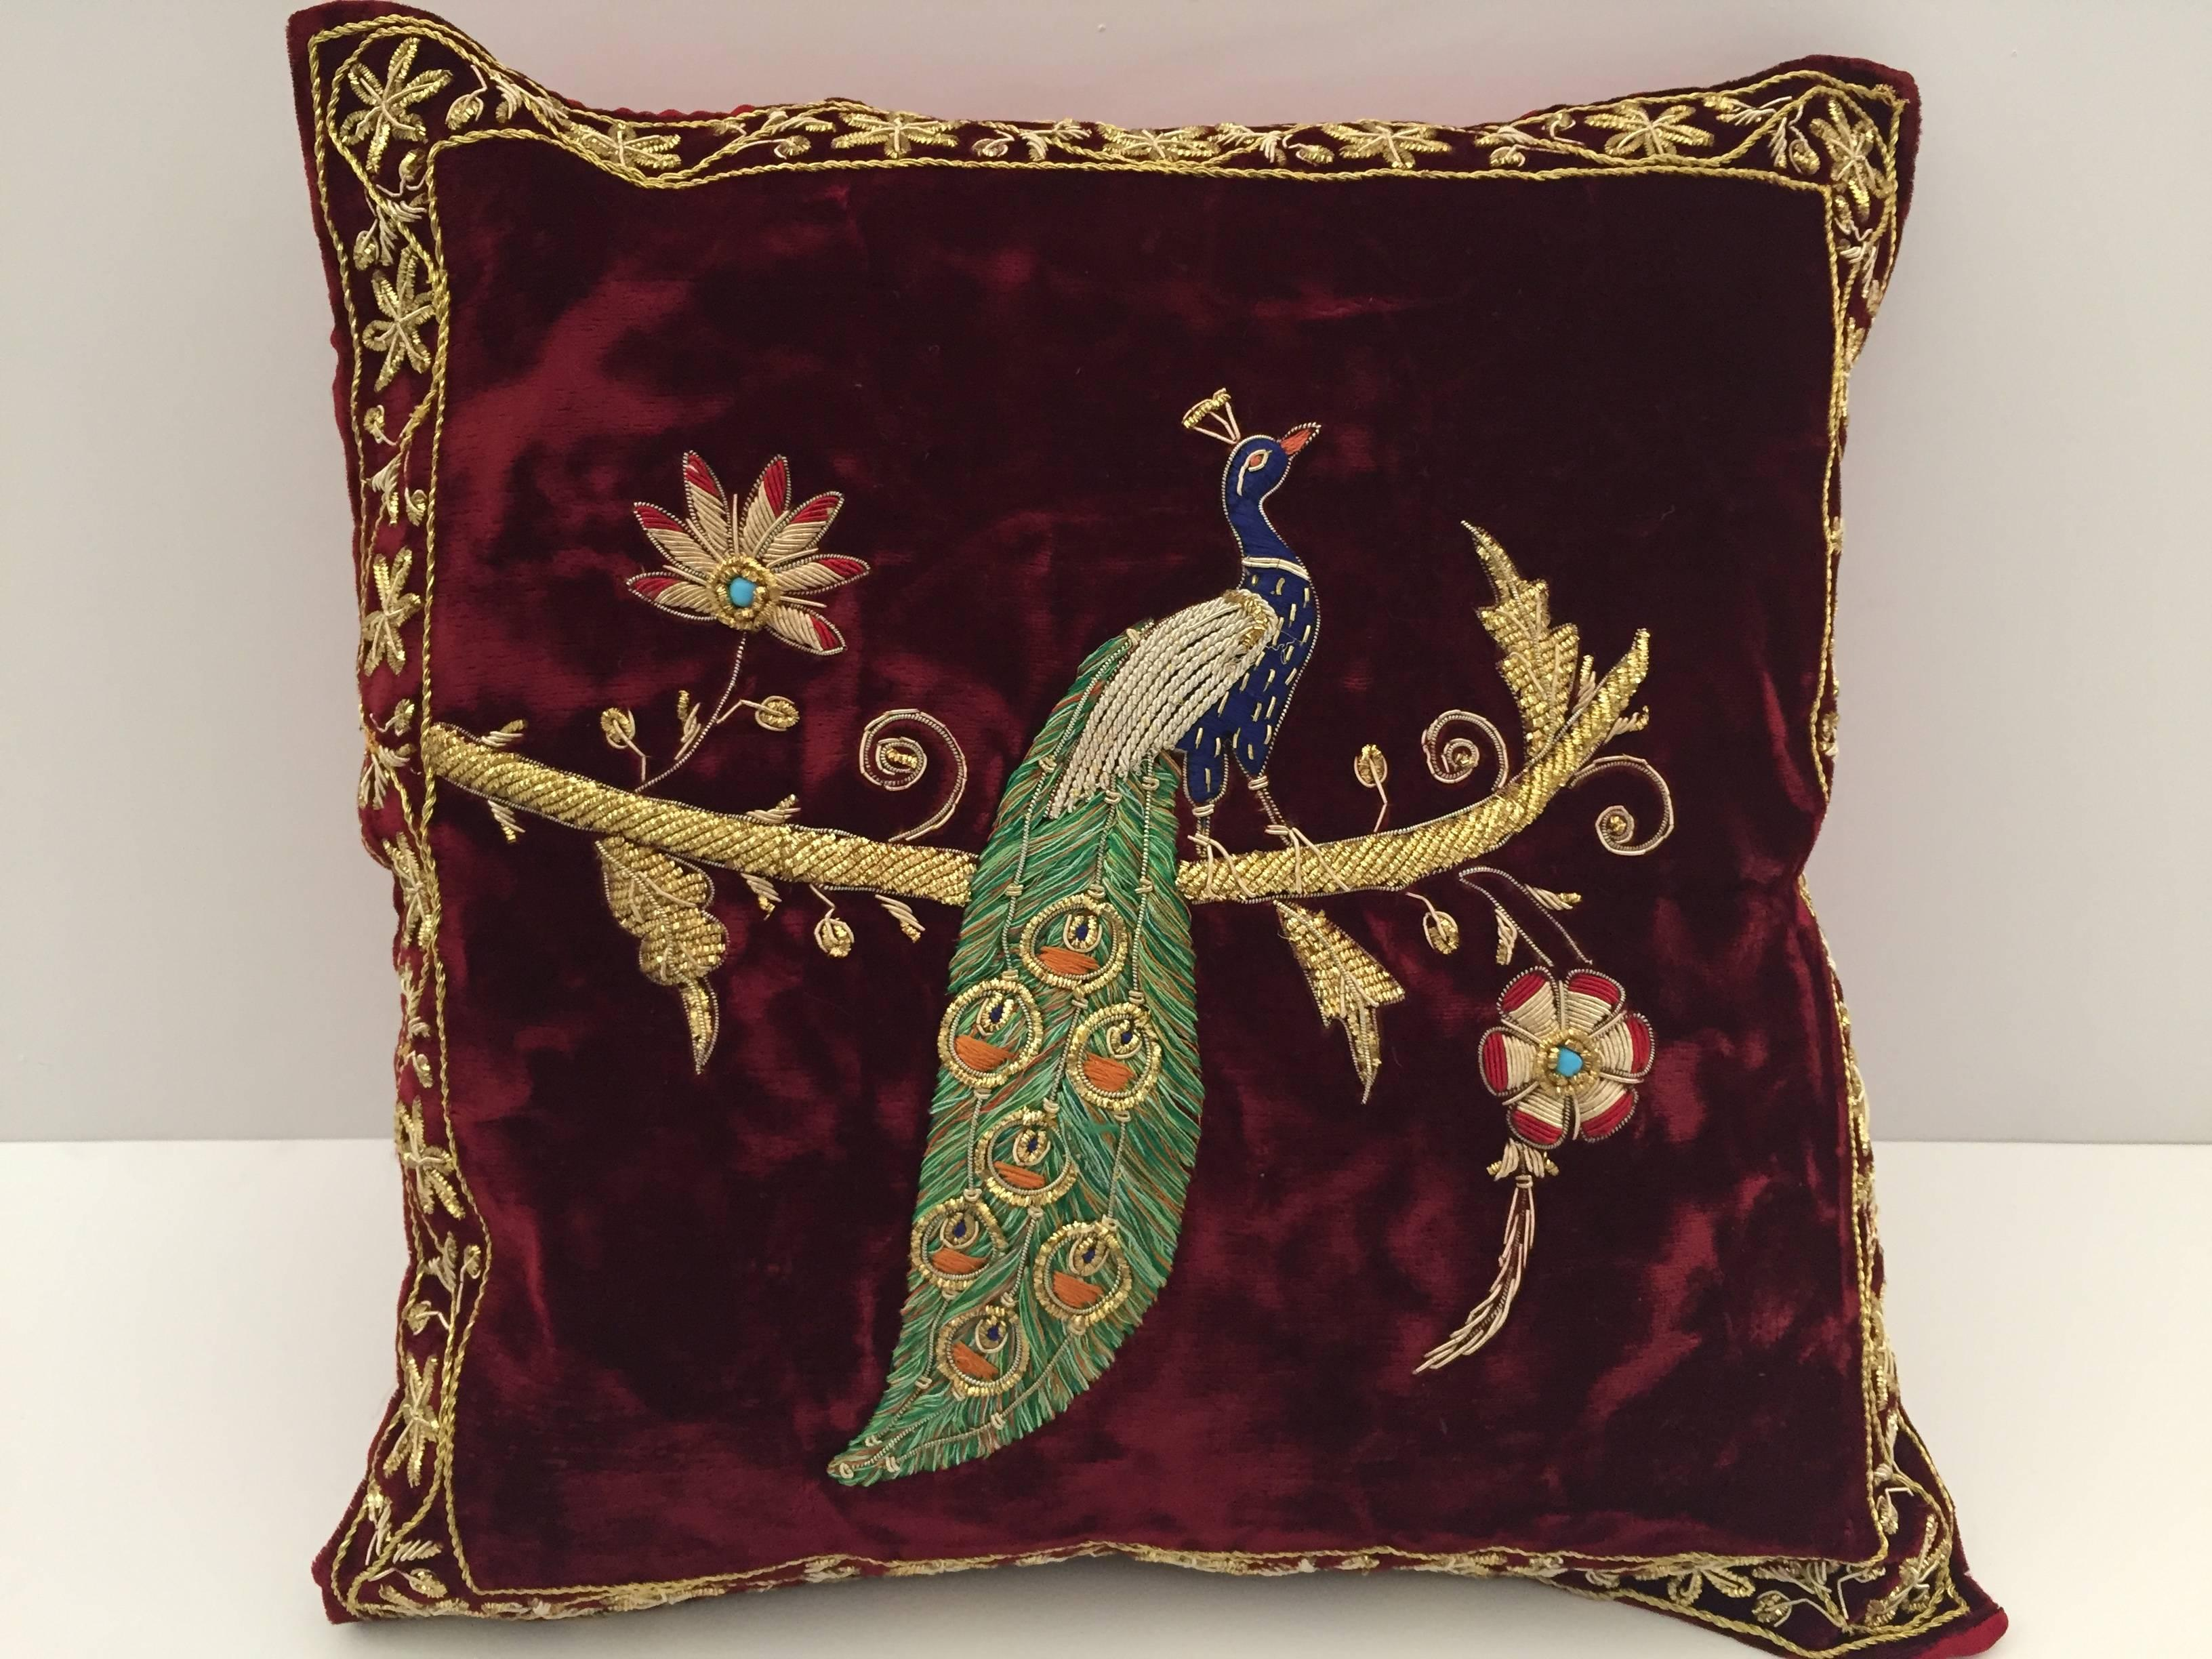 Velvet Burgundy Throw Silk Pillow Embroidered with Gold